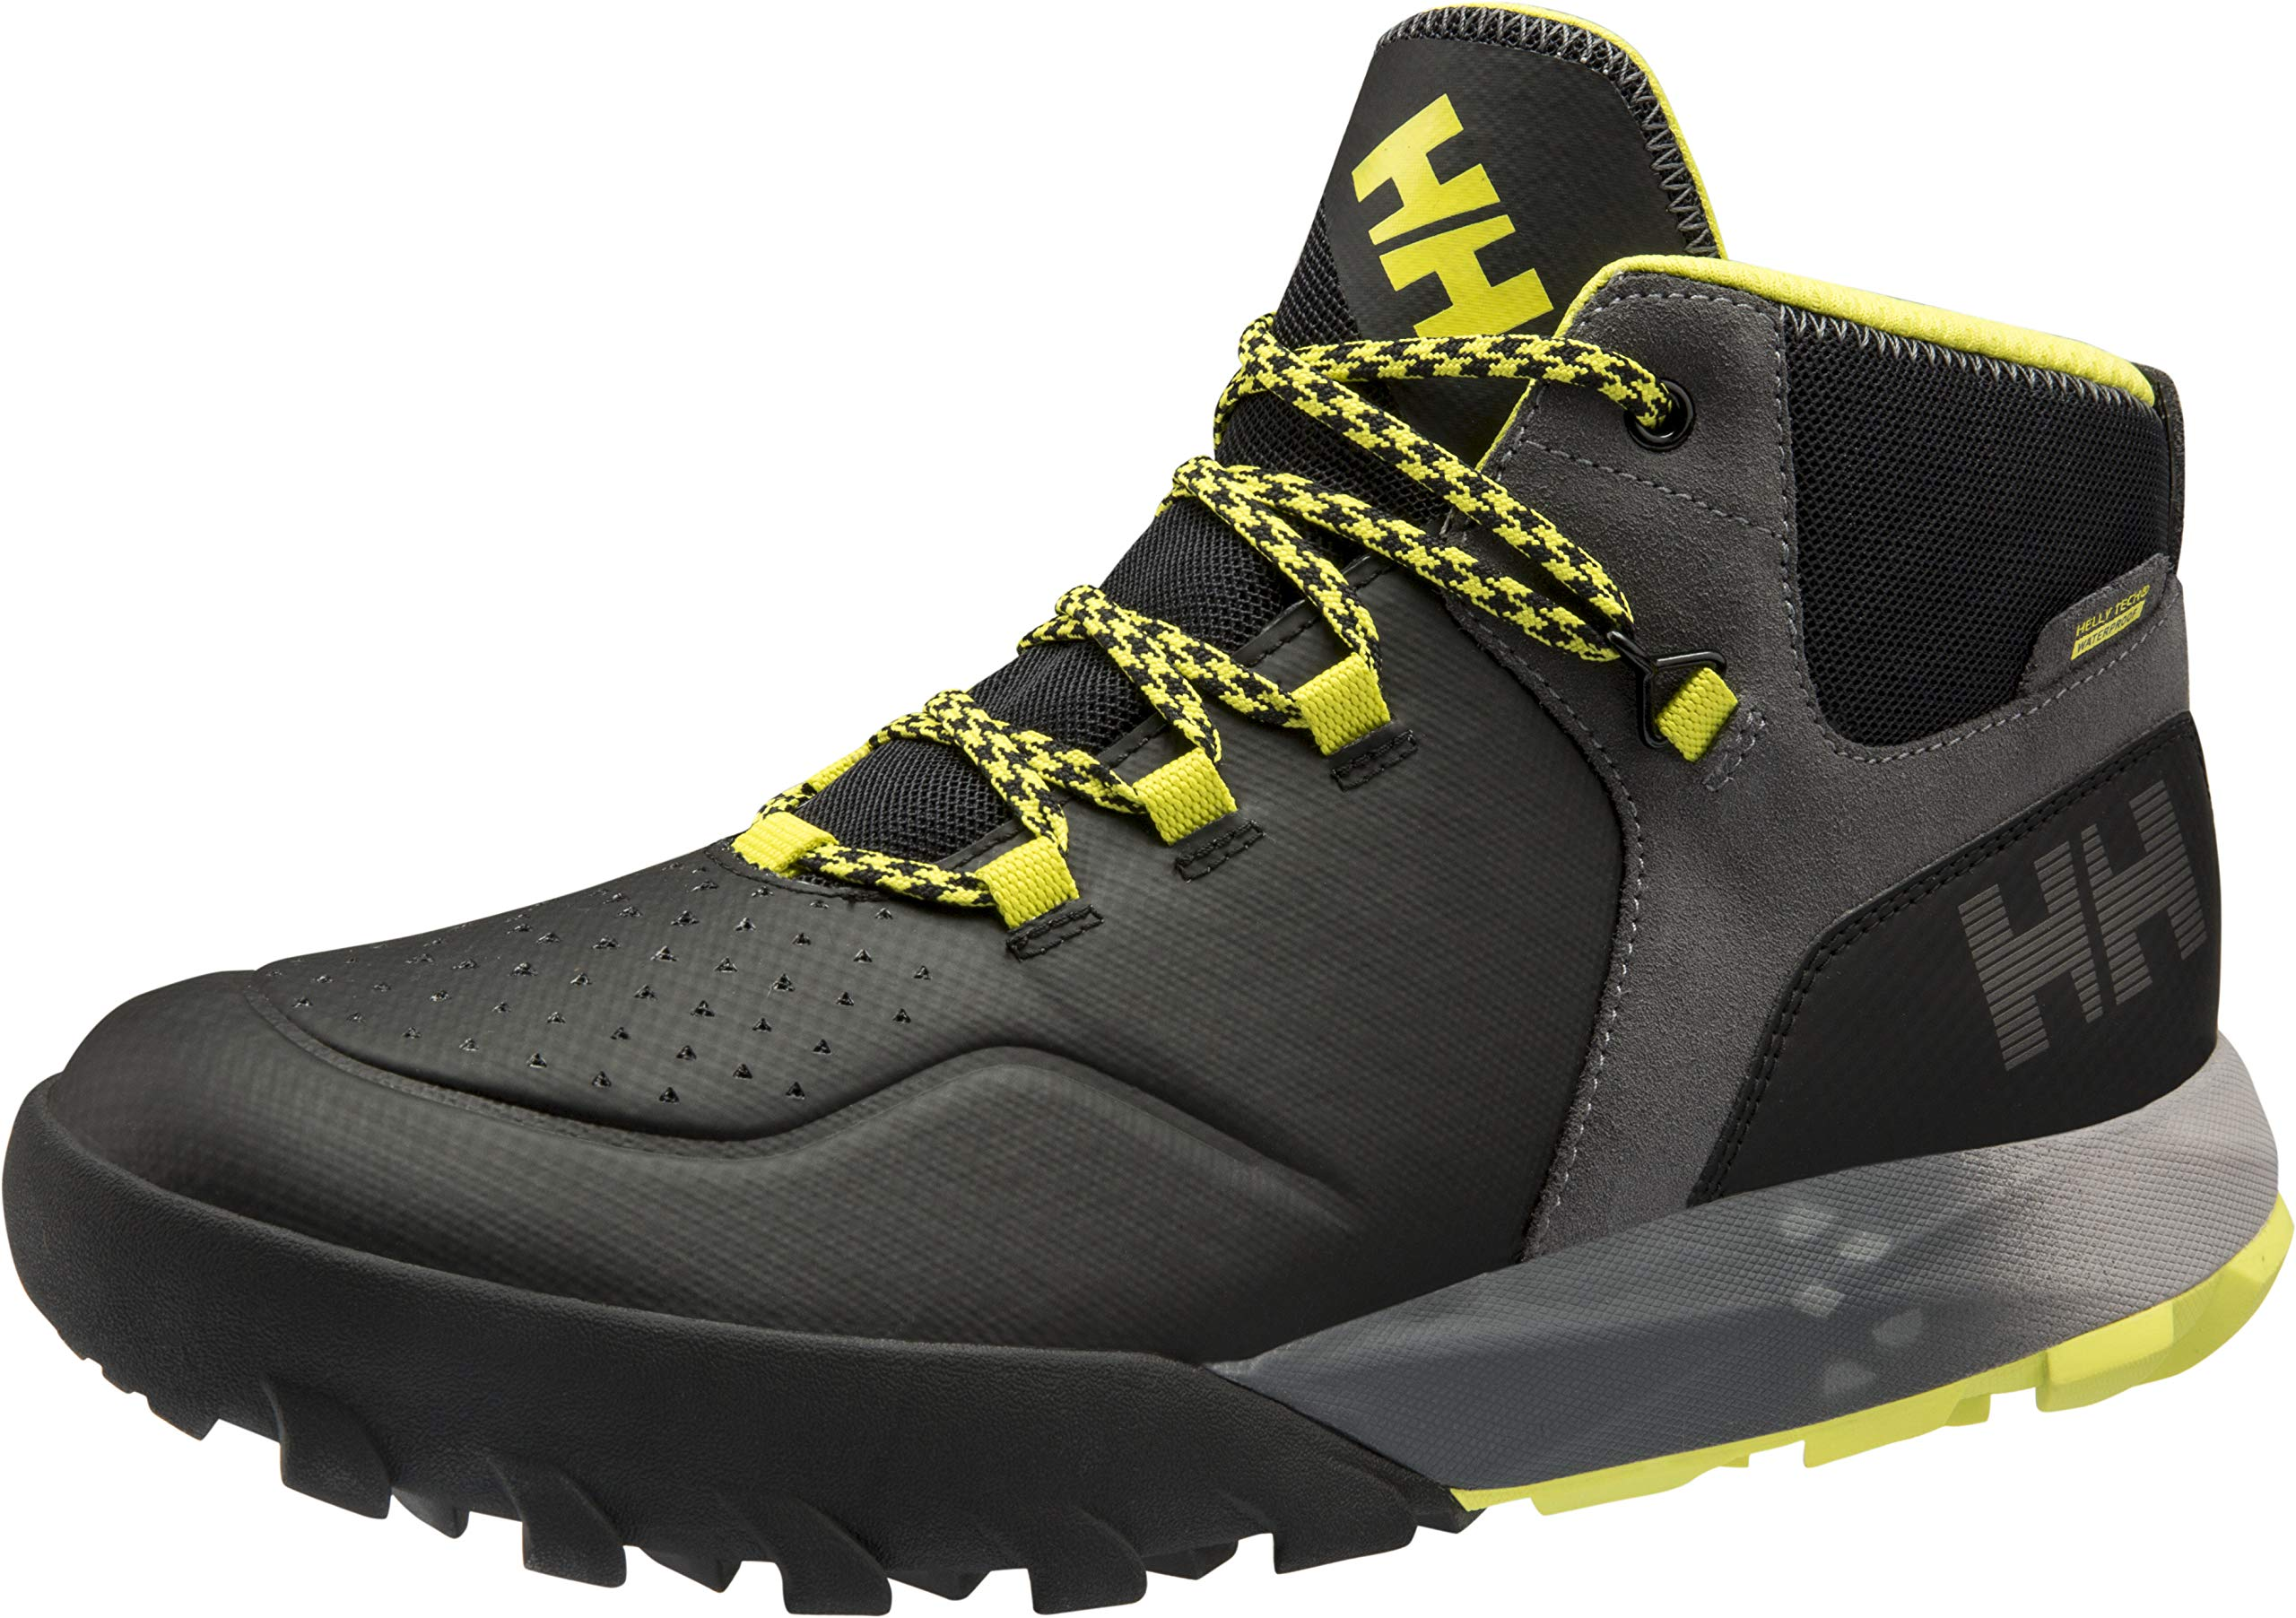 Helly Hansen Men's Loke Rambler Waterproof HT Hiker, Black/Charcoal/Silver Grey/Sweet Lime, 10